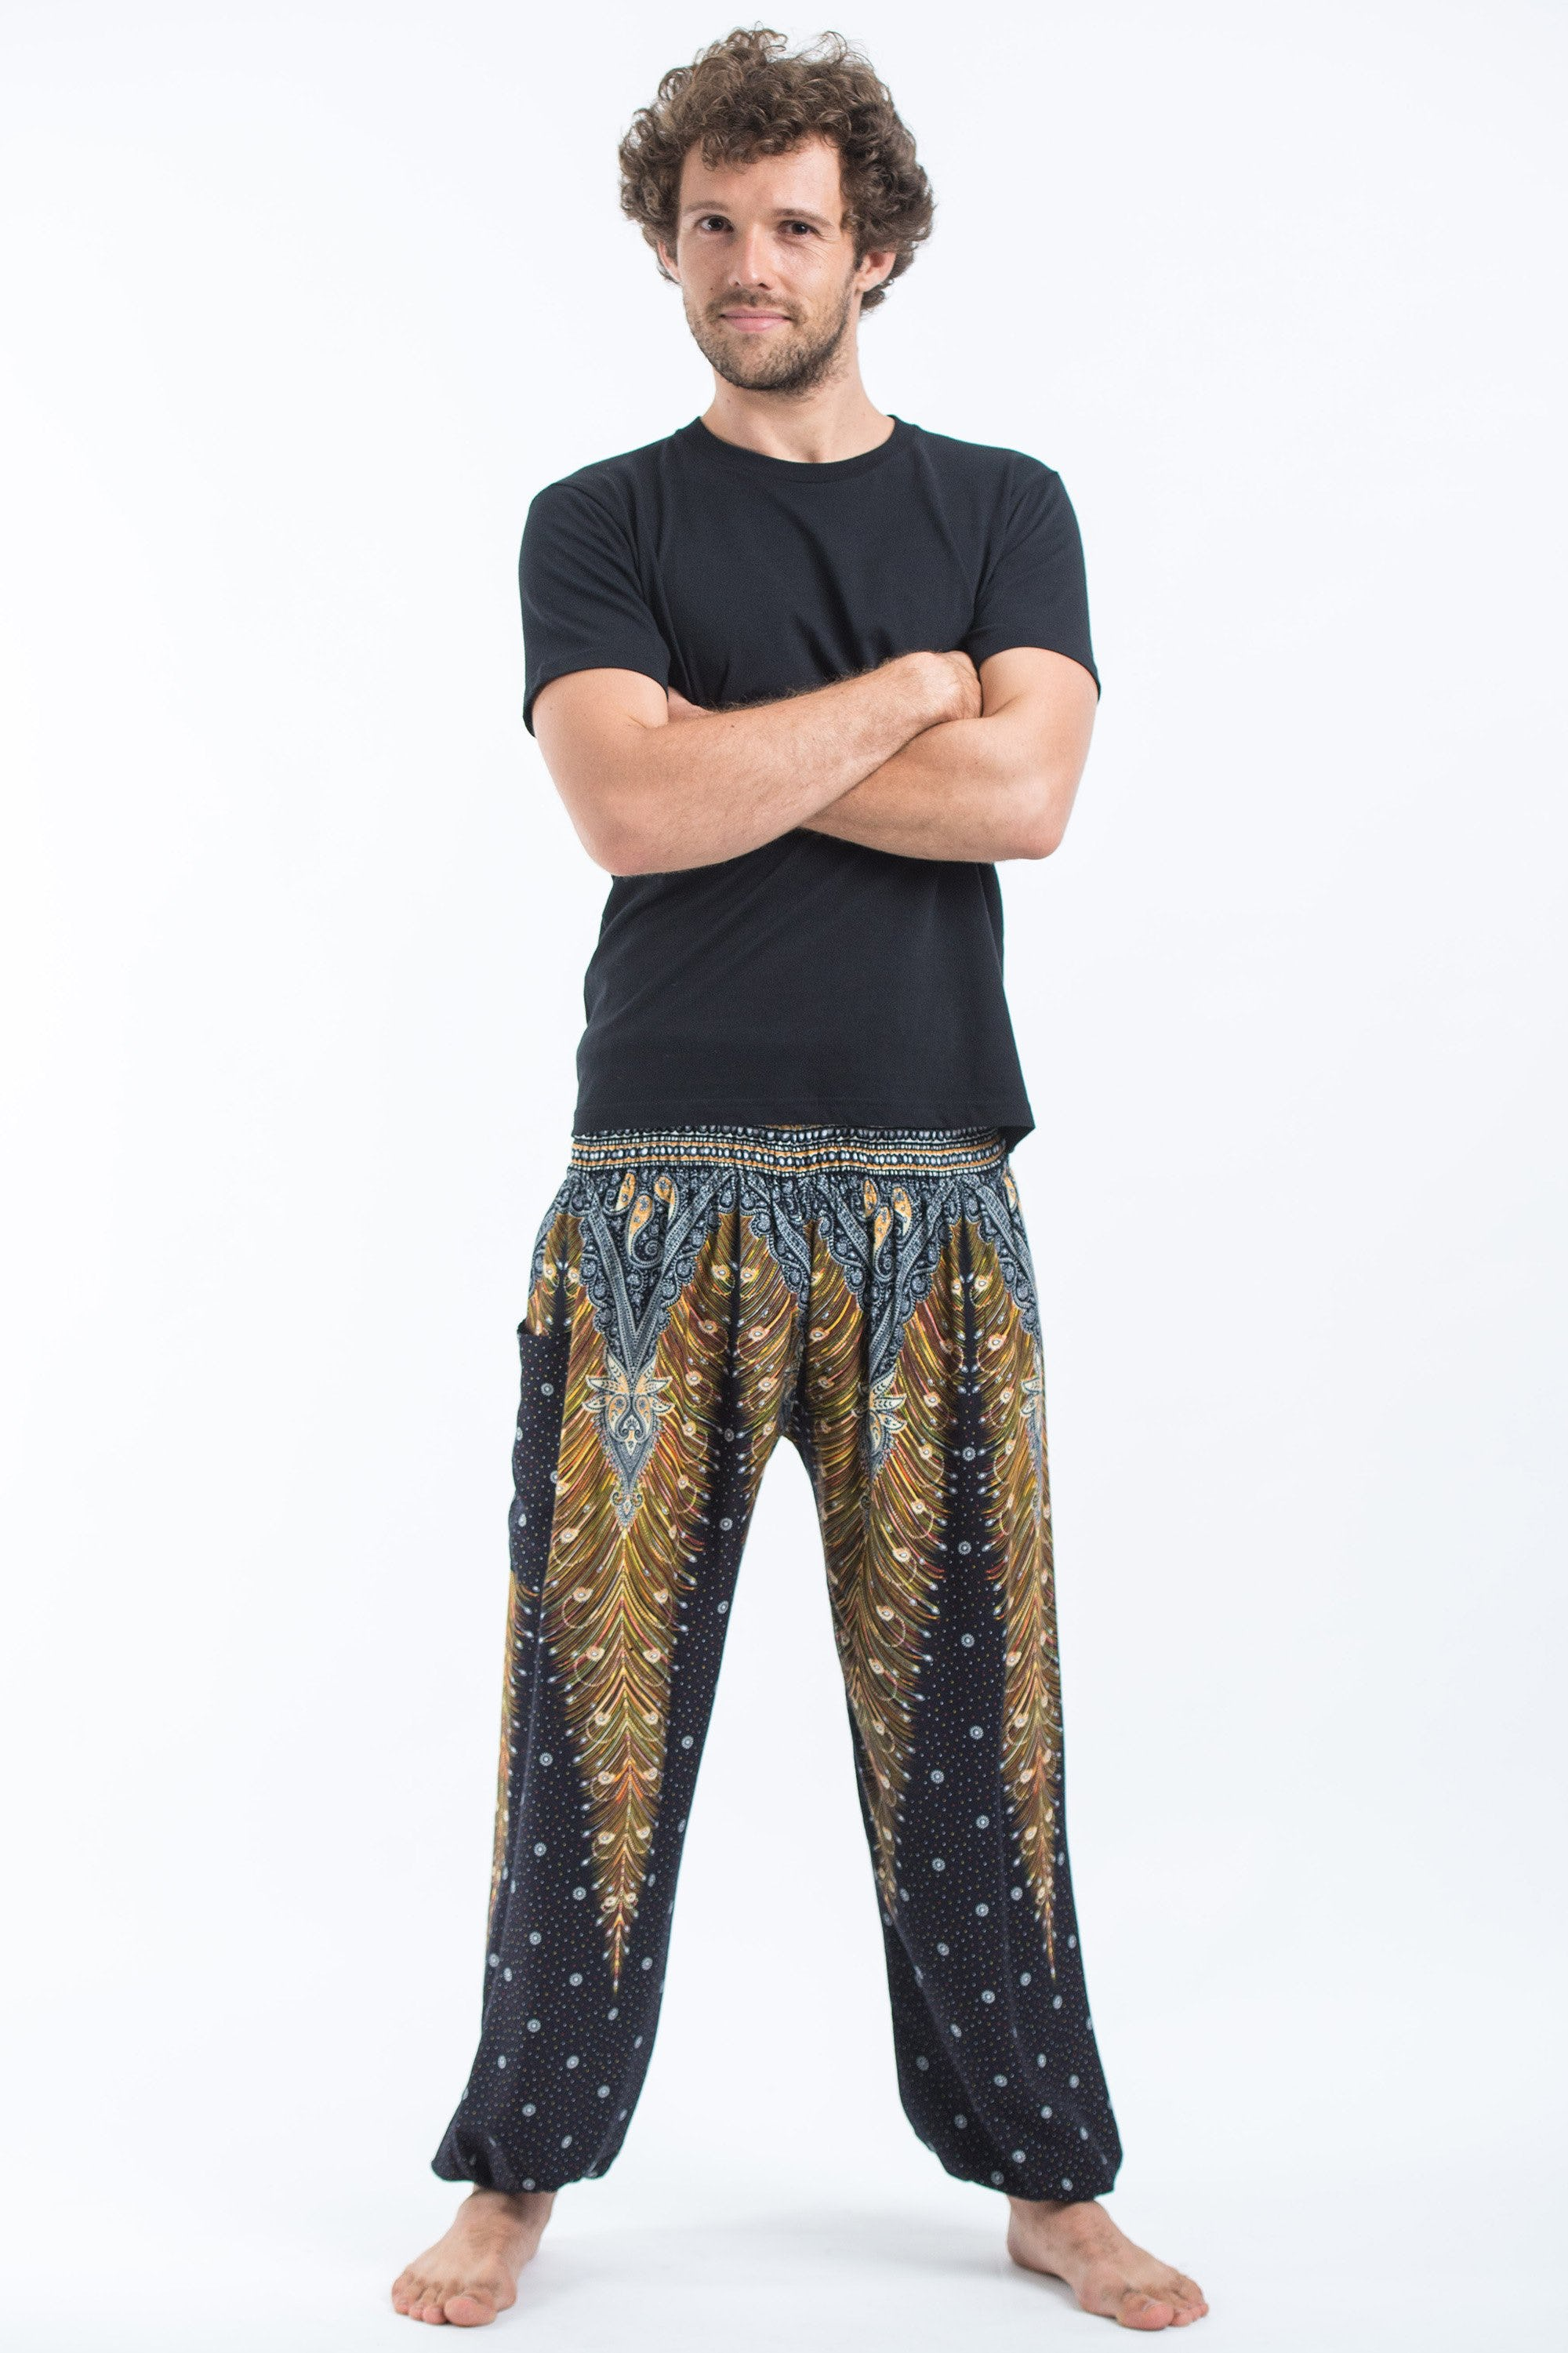 8f0ba0937c9 Details about Harem Pants Unisex Peacock Feather High Cut Rayon Yoga  Trousers Bottoms